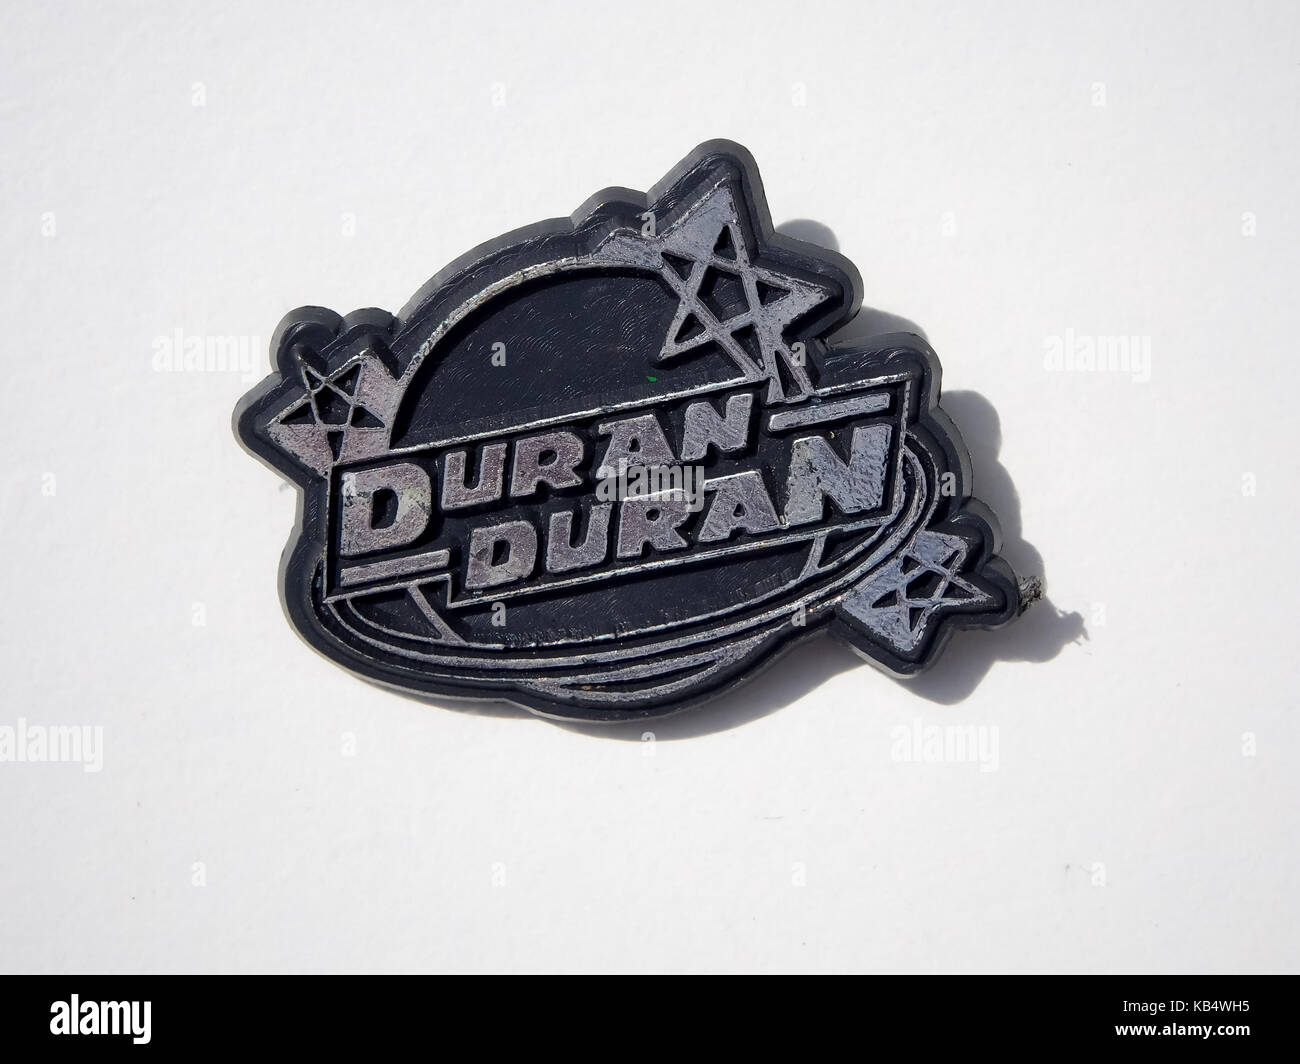 A badge from the 1980s for the pop band duran duran stock photo a badge from the 1980s for the pop band duran duran buycottarizona